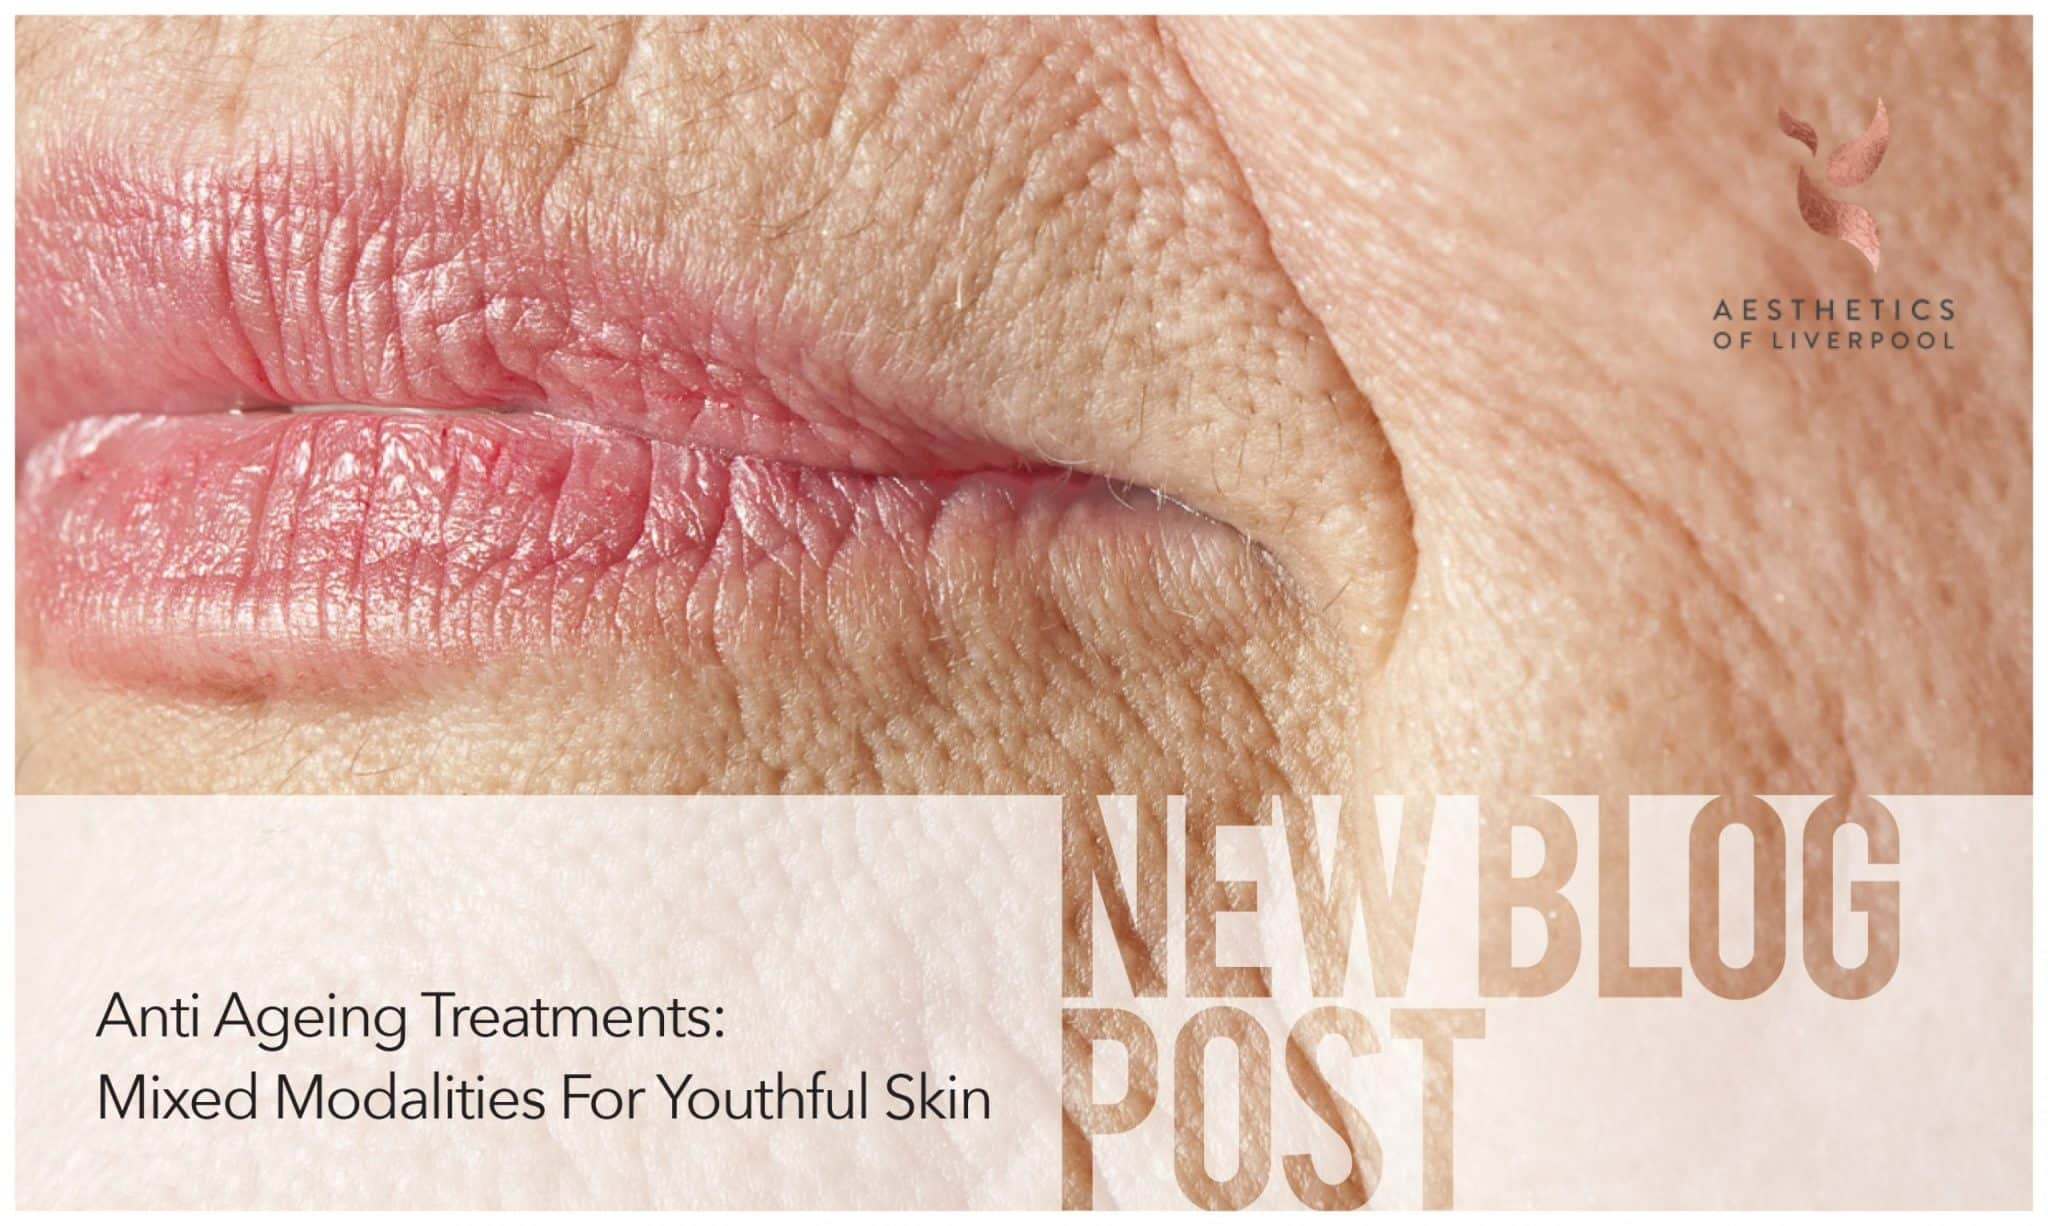 Anti Ageing Treatments: Mixed Modalities For Youthful Skin